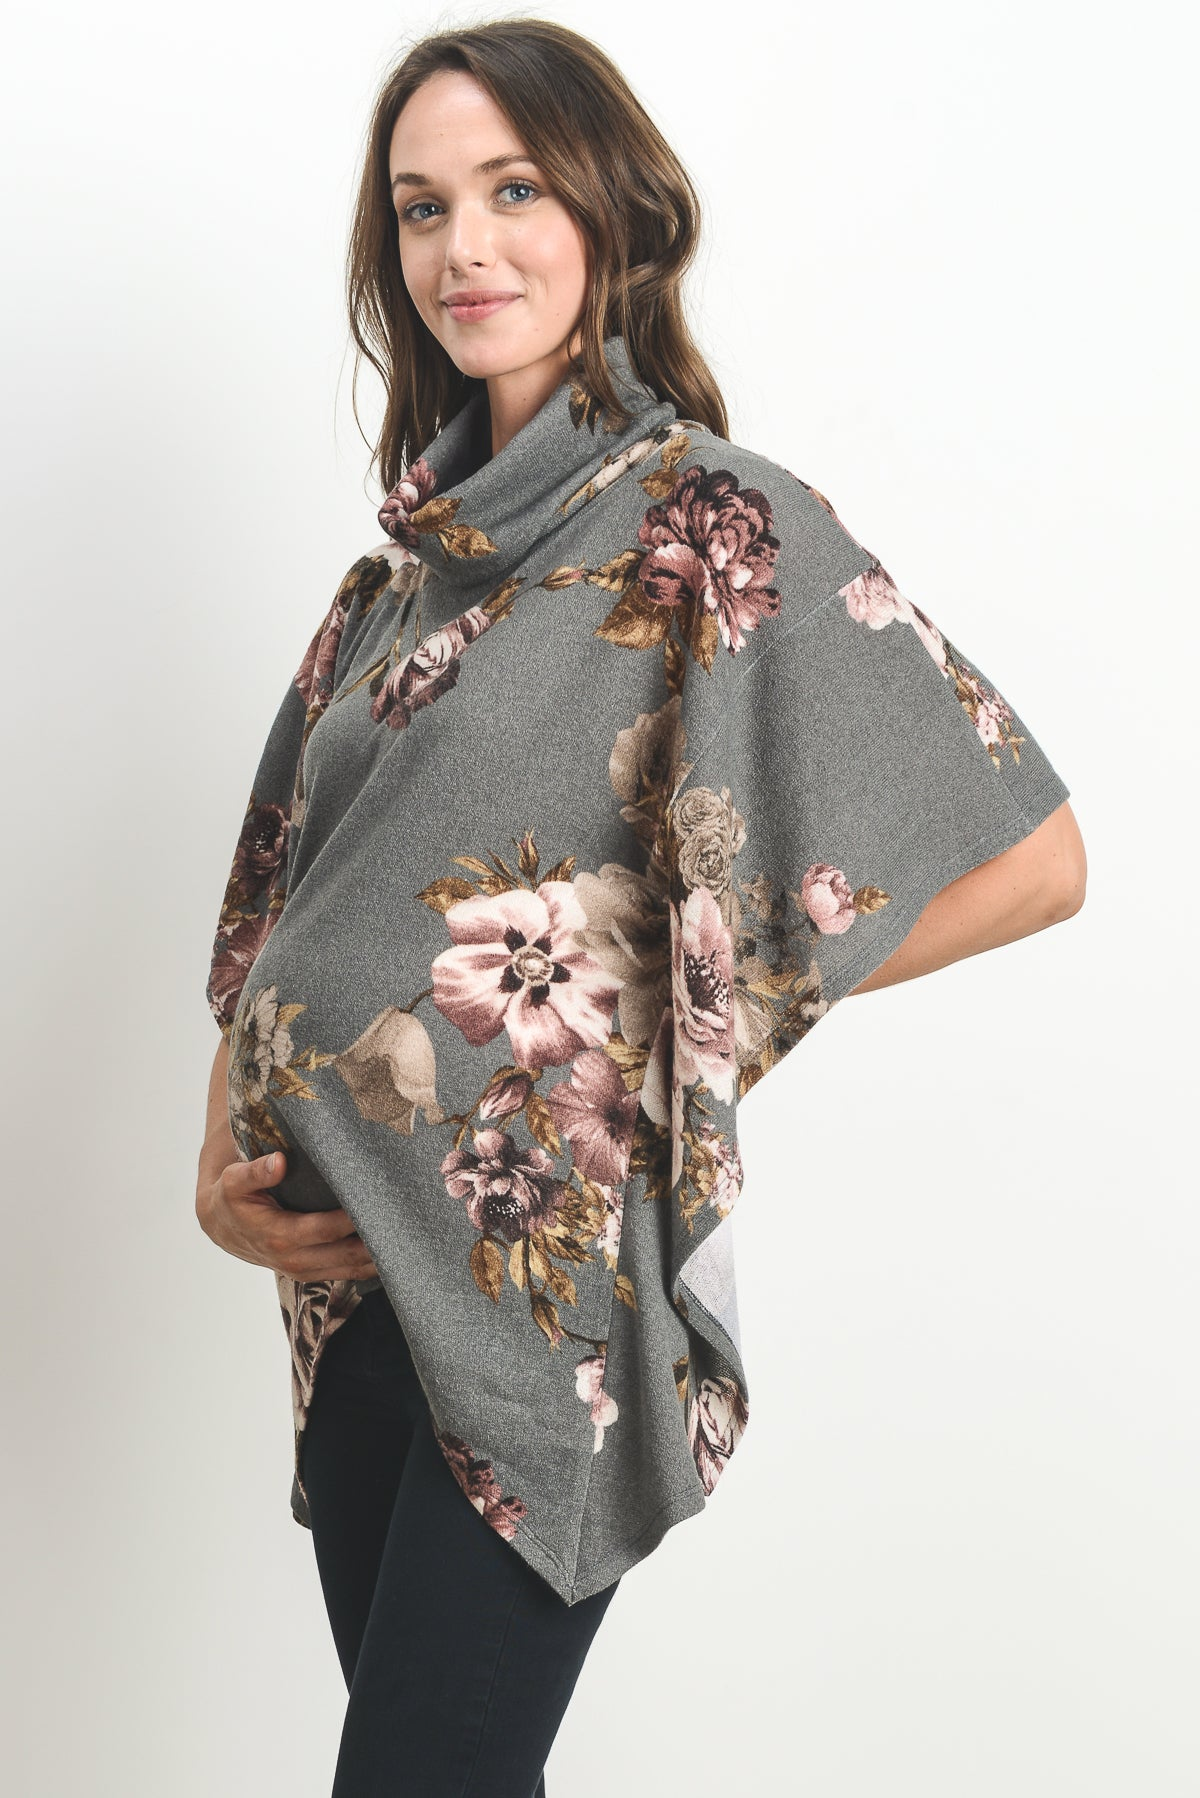 Floral Maternity & Nursing Cover Up Poncho Sweater